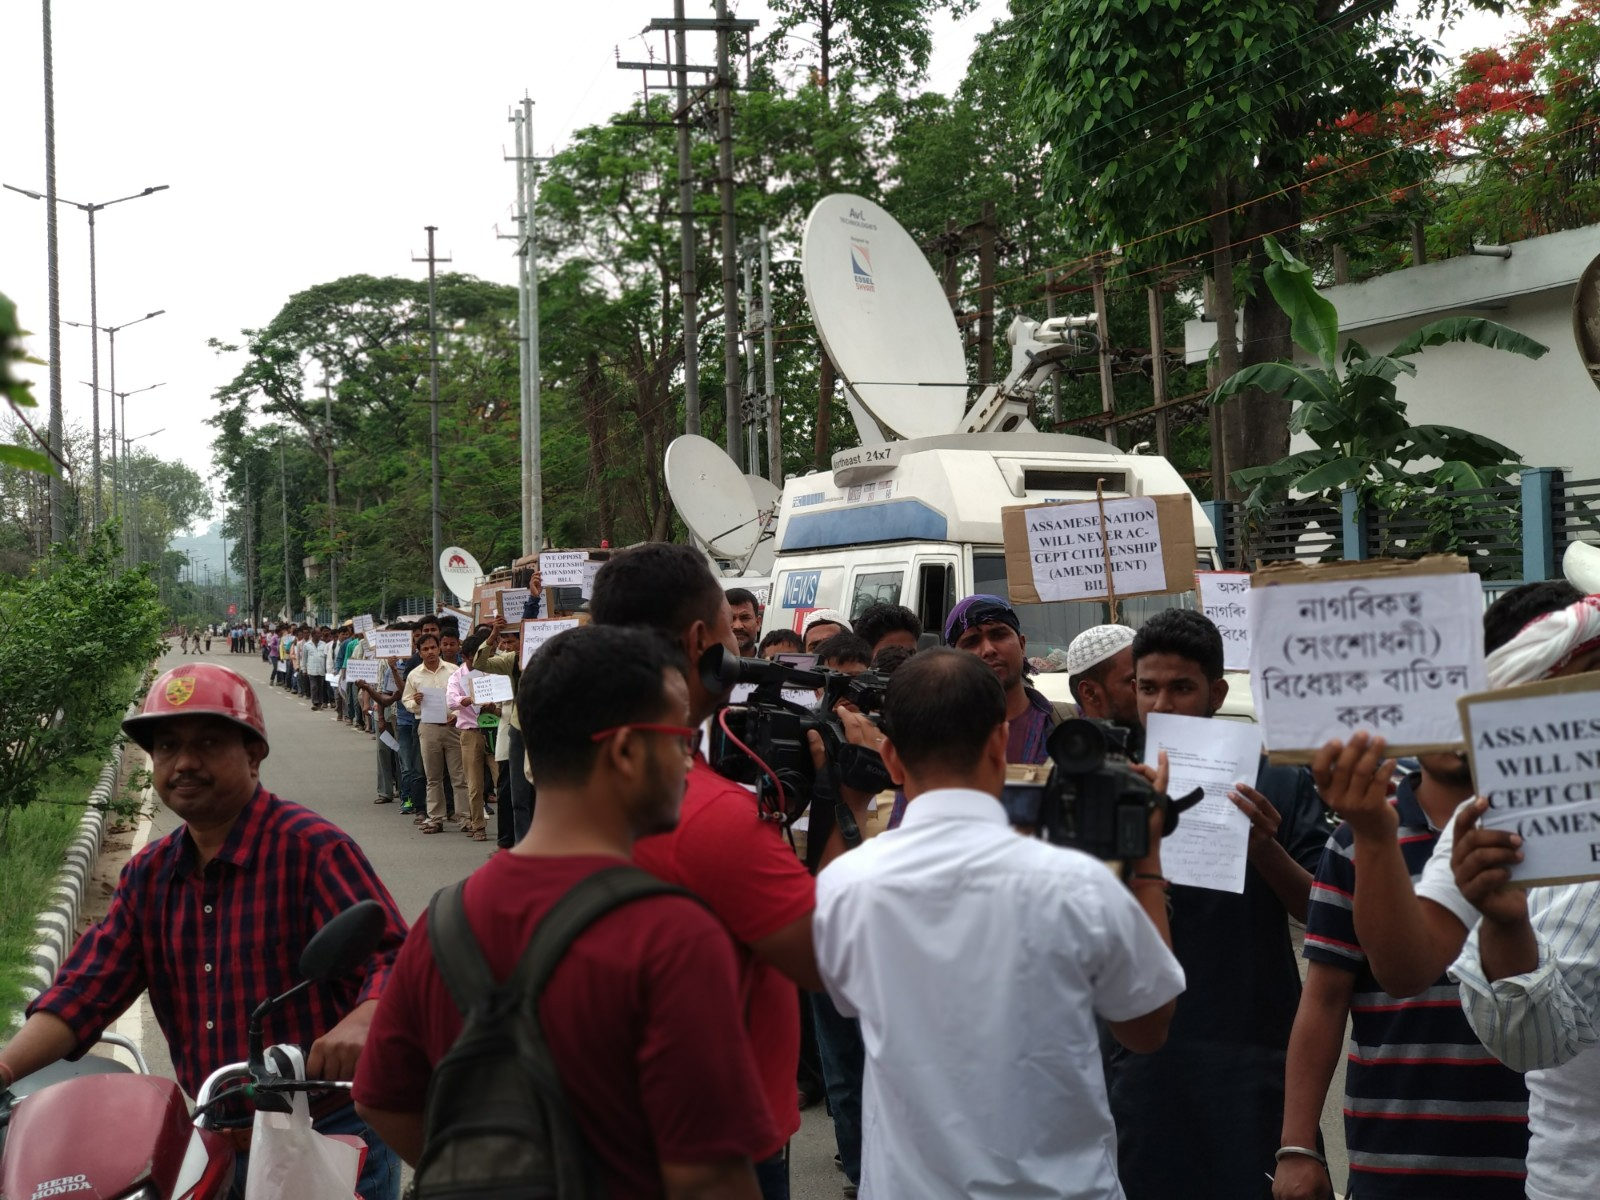 A rally in Guwahati to protest the Bill